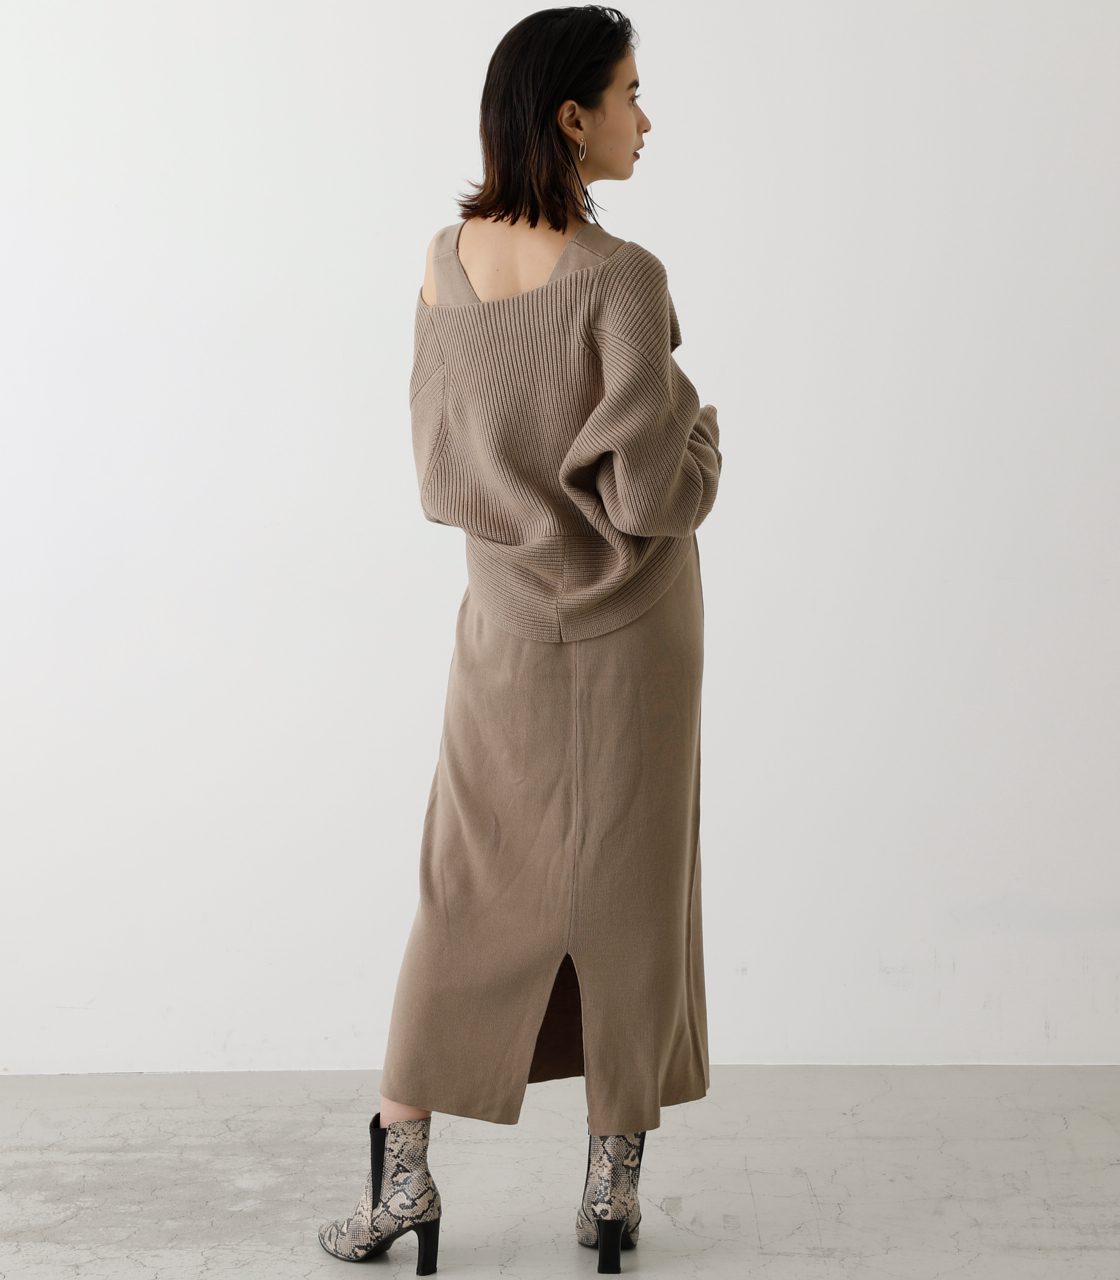 TWIST LAYERED ONE-PIECE/ツイストレイヤードワンピース 詳細画像 BEG 2